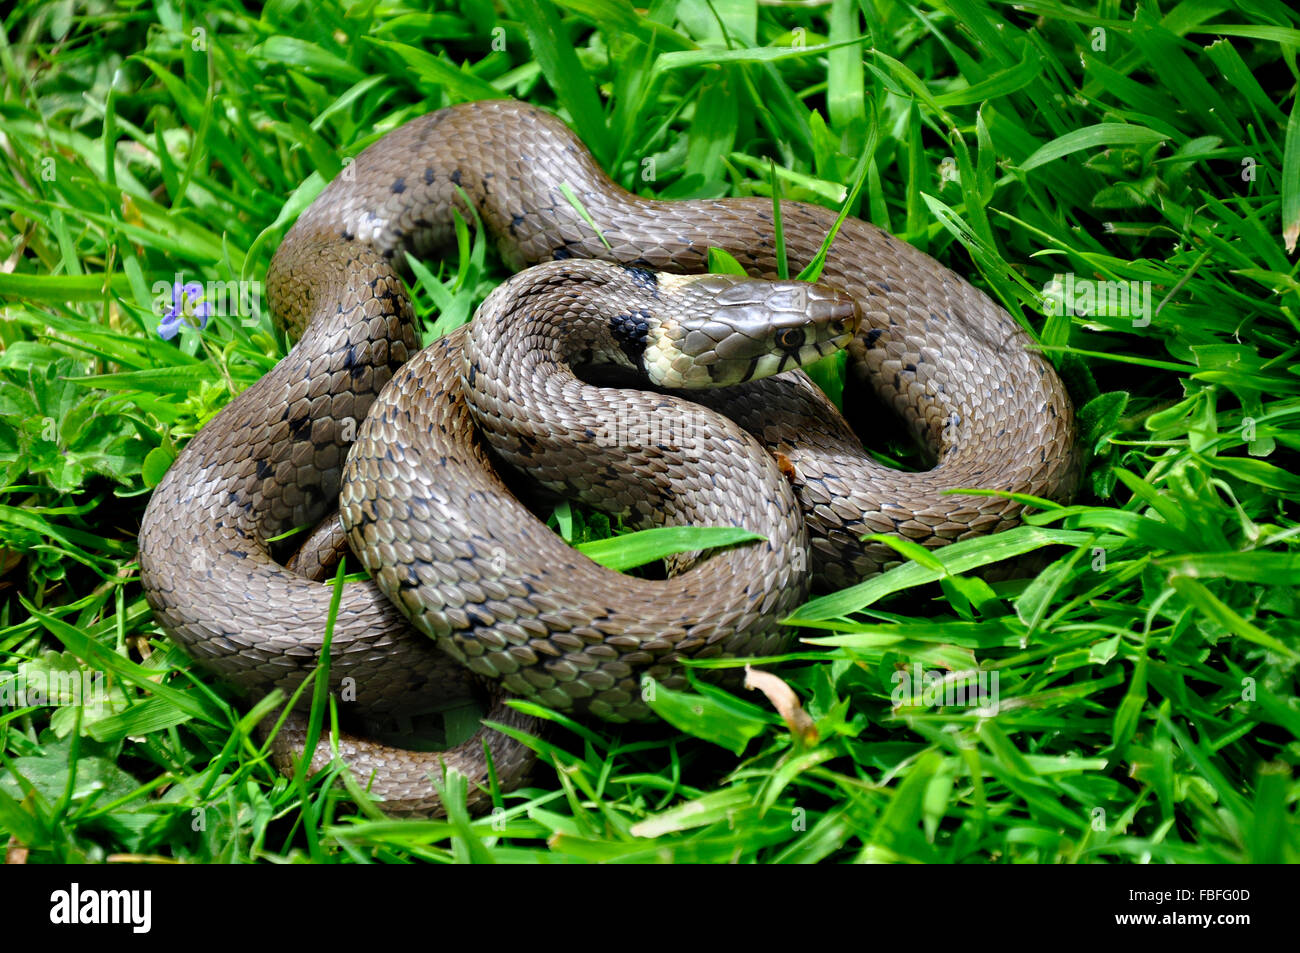 Grass snake curled up in the grass UK - Stock Image